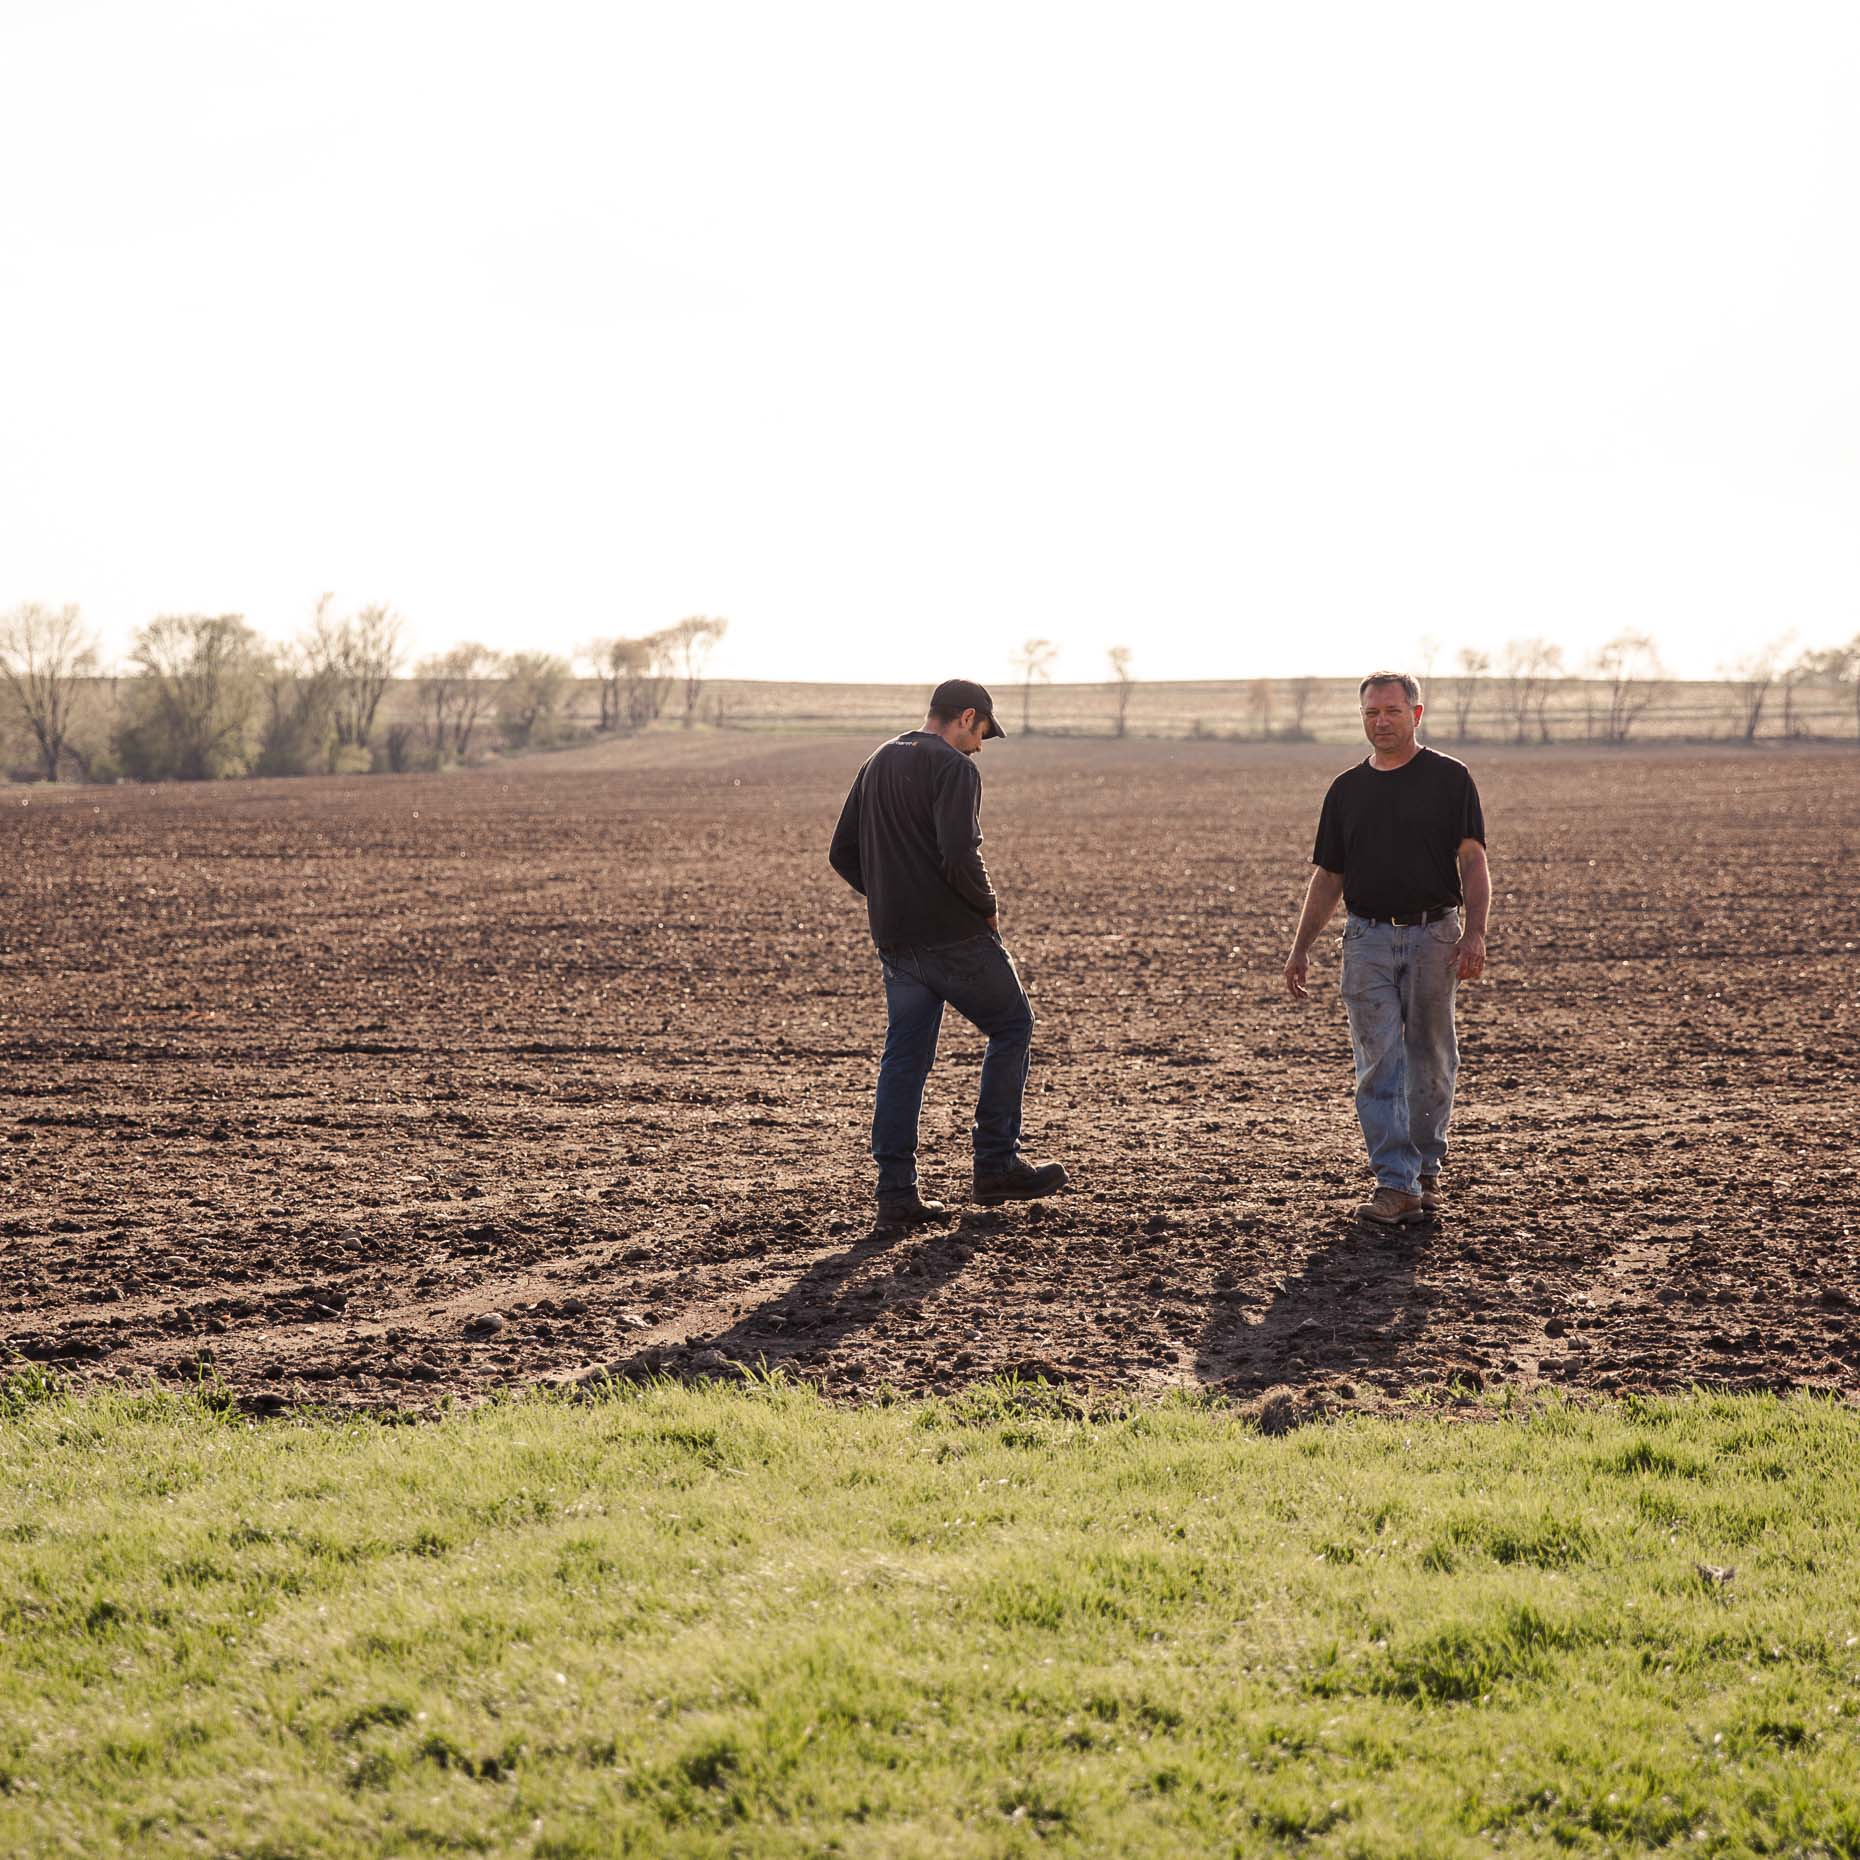 Joe Woodman and his father, Ron, walk in a freshly planted field of corn on their family farm in Janesville, Wisconsin.